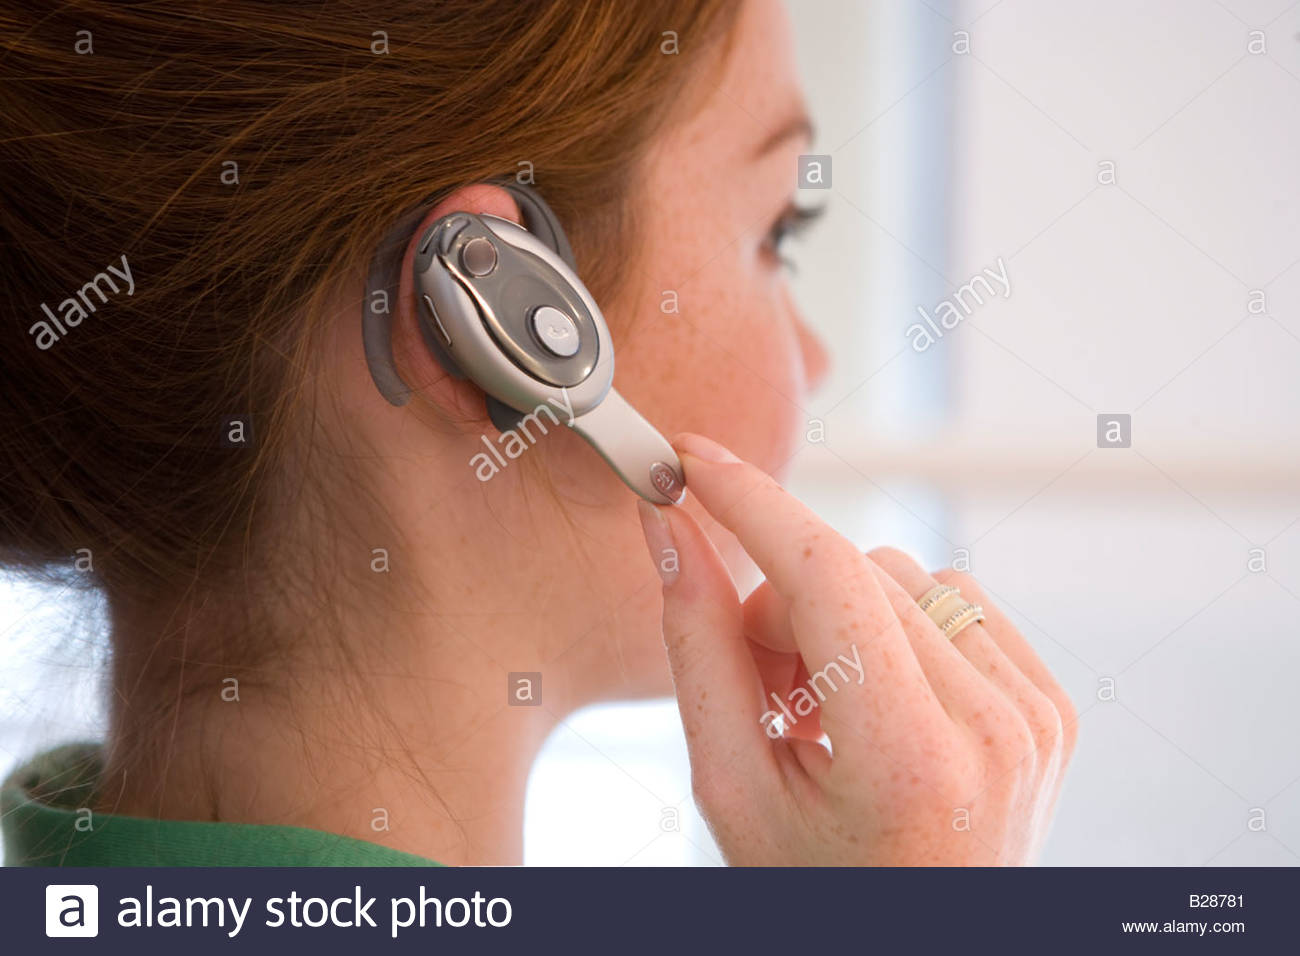 Woman with hands free device, side view - Stock Image